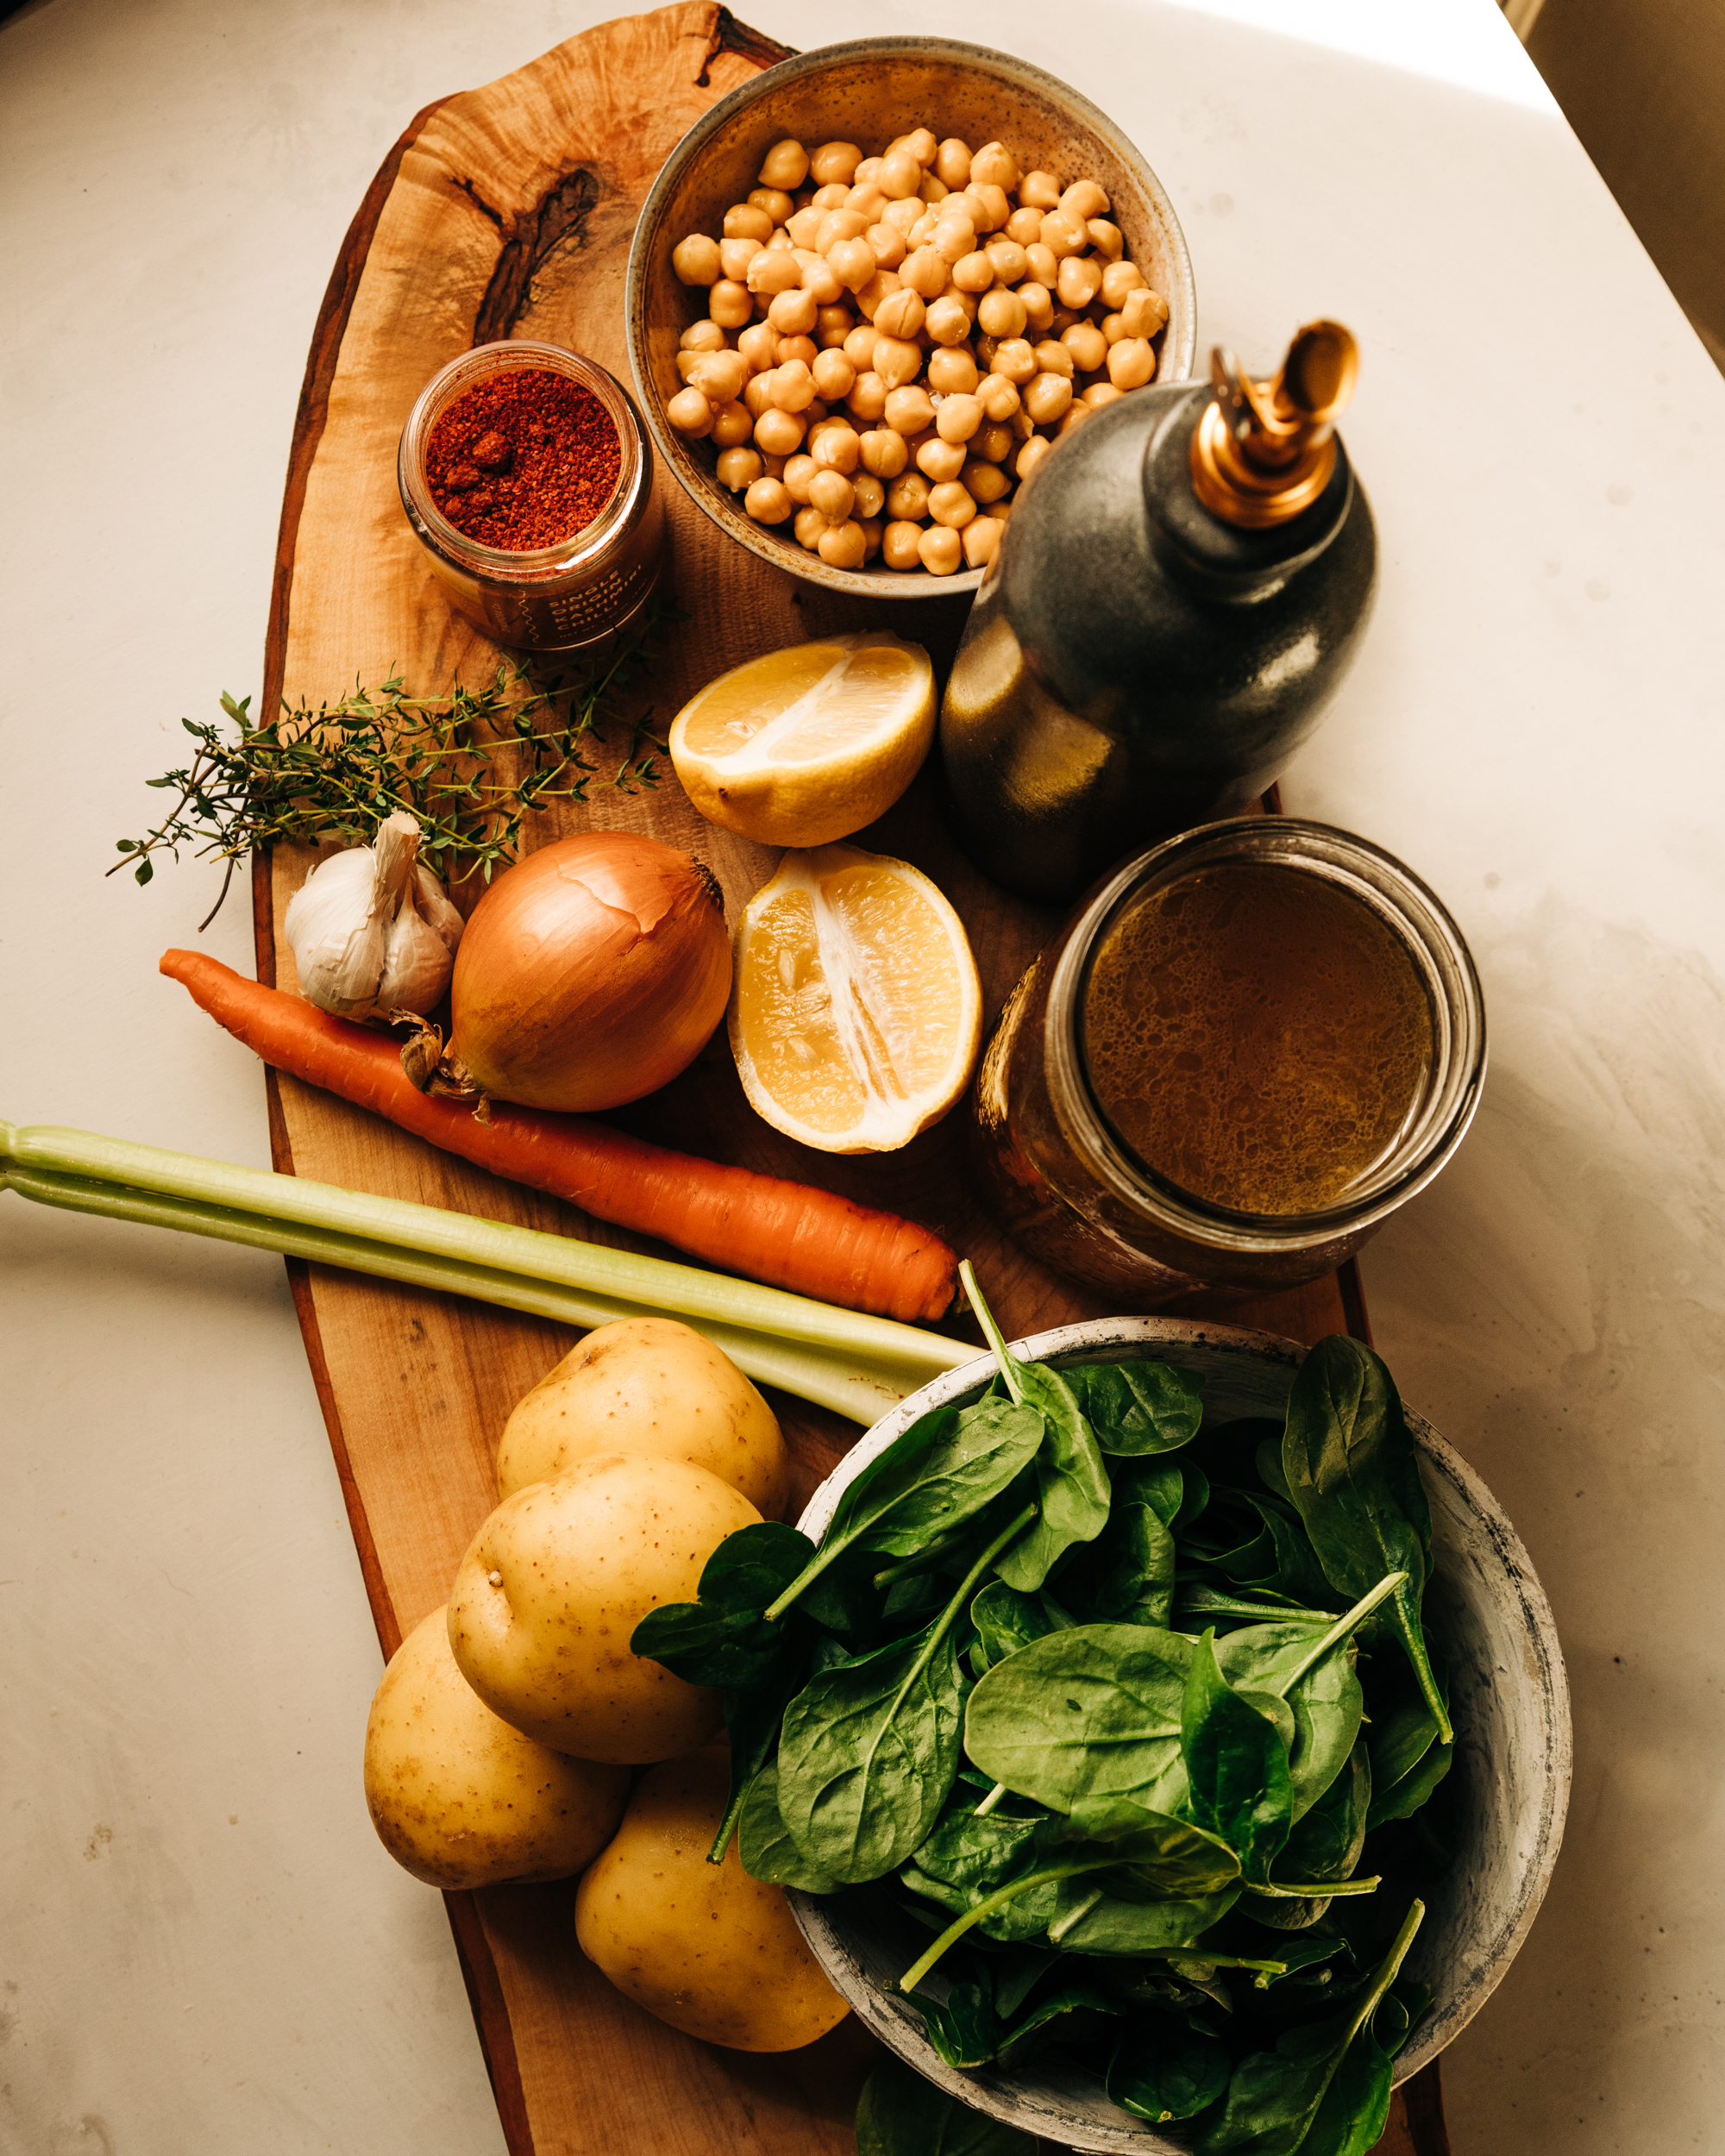 An overhead shot of ingredients on a wooden board.